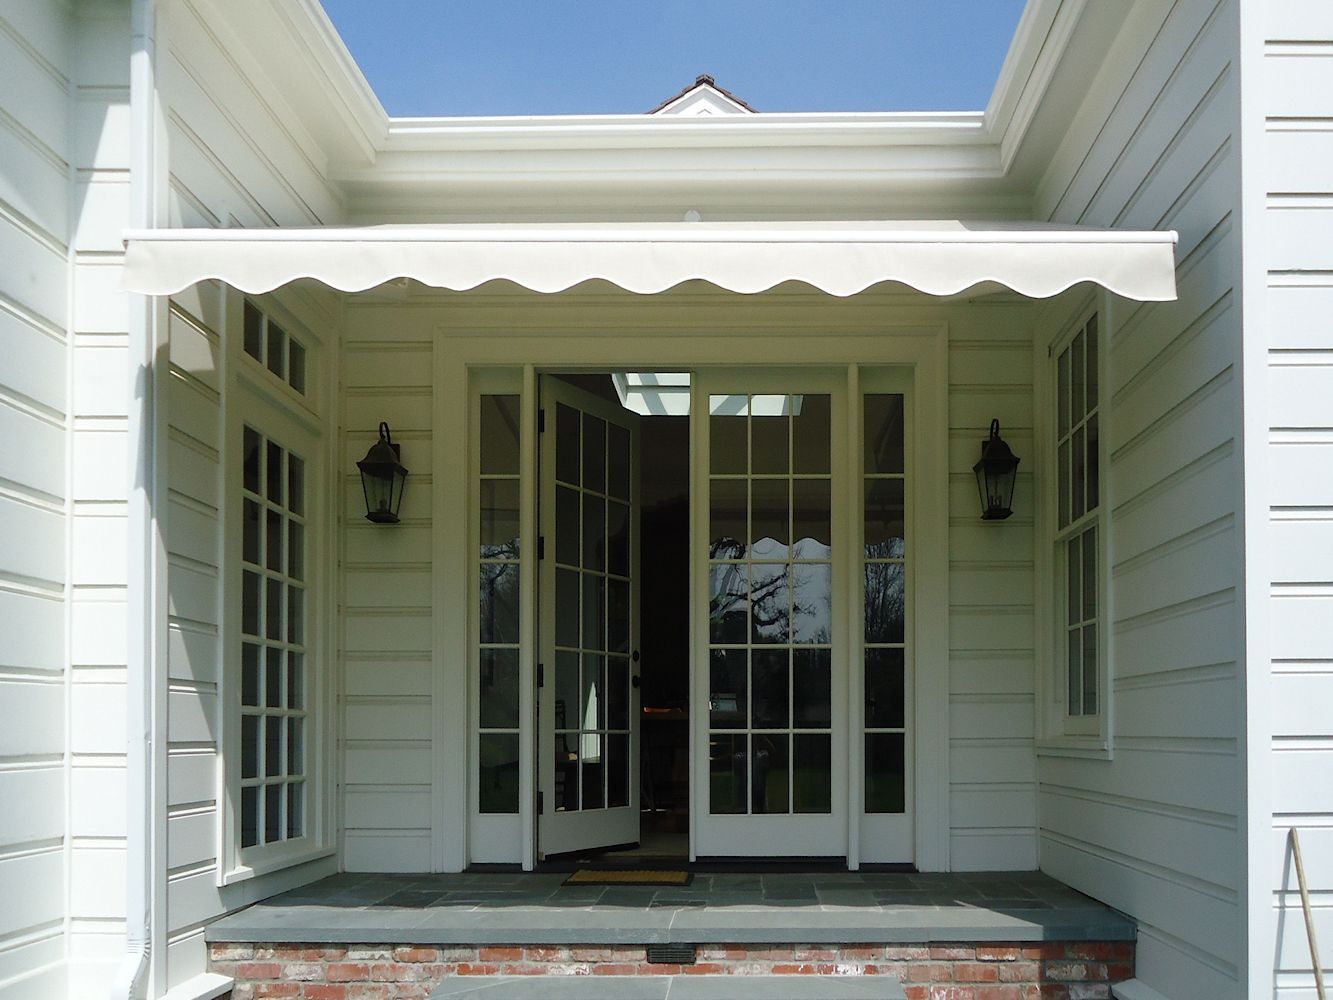 Retractable Awnings By Superior Awning Let The Sun Shine Retractable Awning Custom Awnings Front Door Design